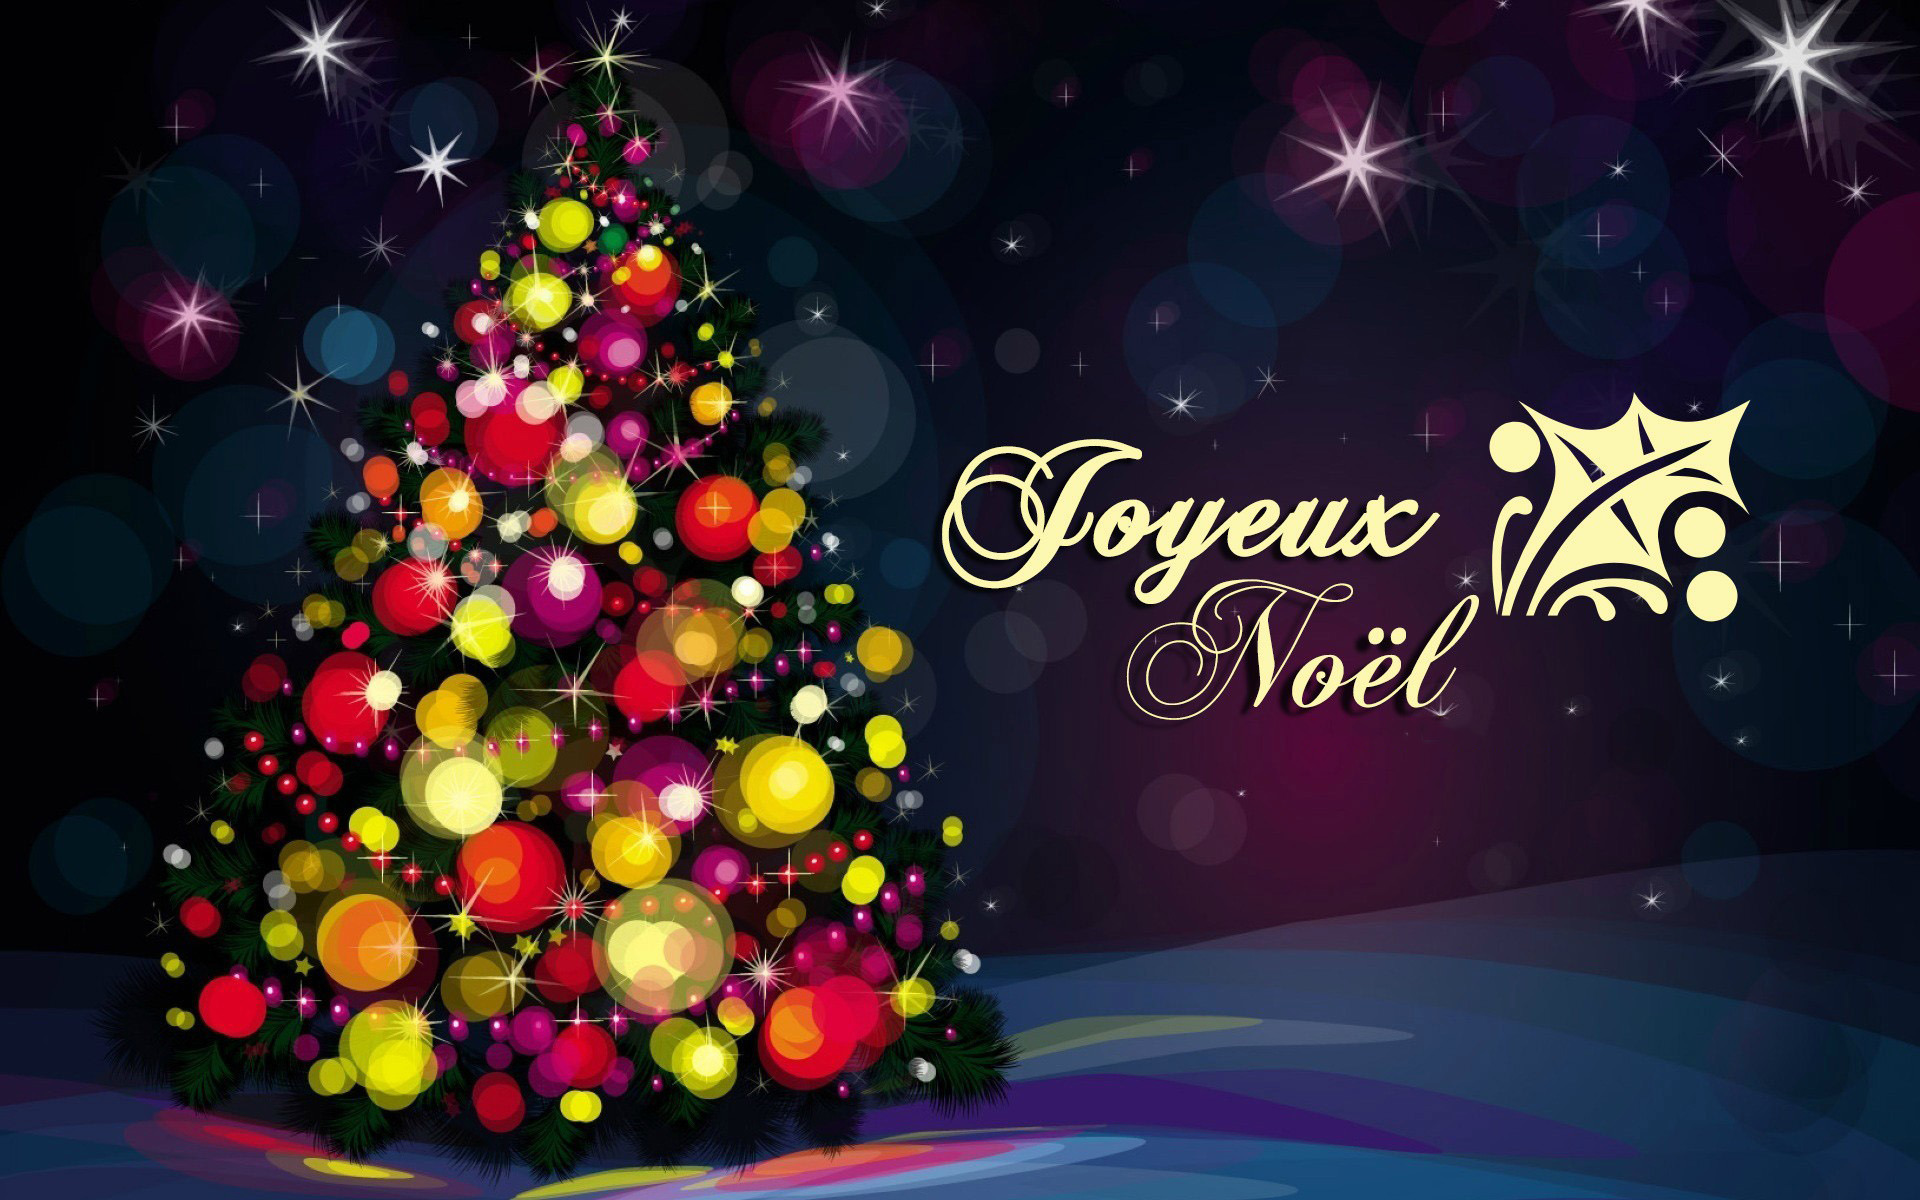 Wallpapers Joyeux Noël Maximumwall